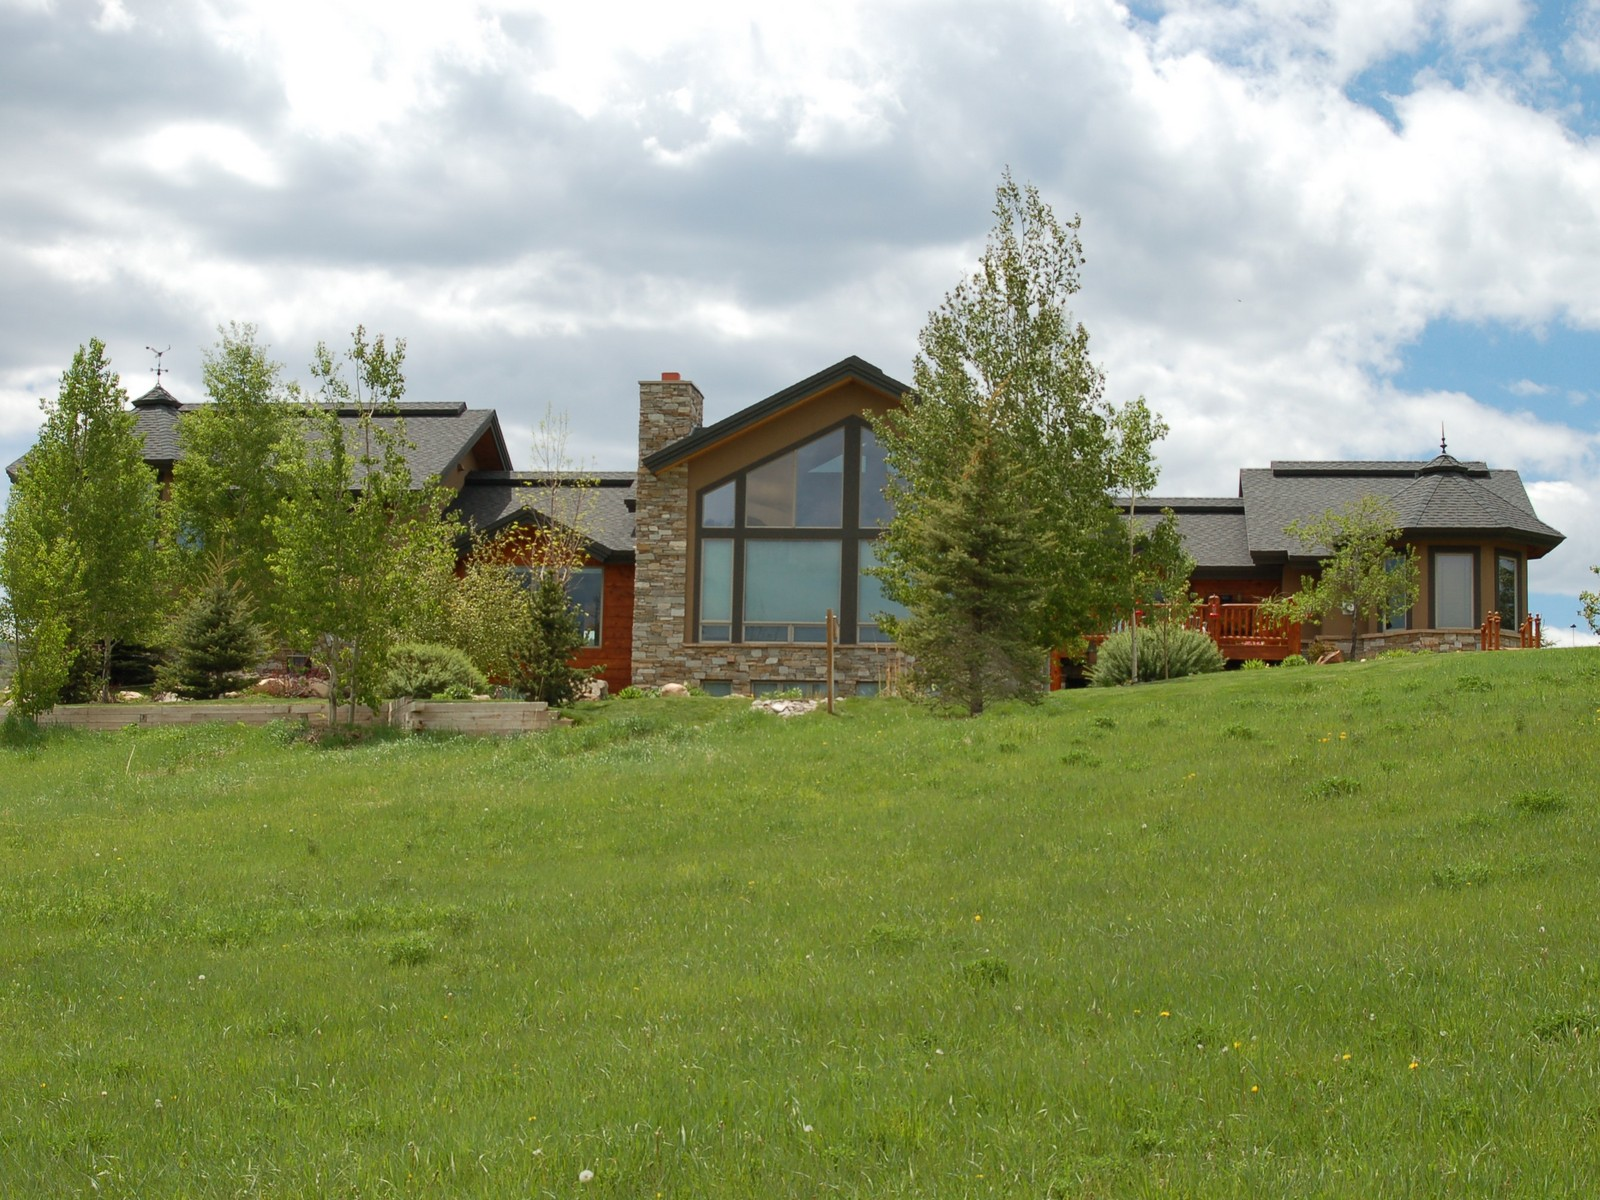 Single Family Home for Sale at Architectural Masterpiece on 37 Acres 28505 Thorpe Mountain Dr. Steamboat Springs, Colorado 80487 United States